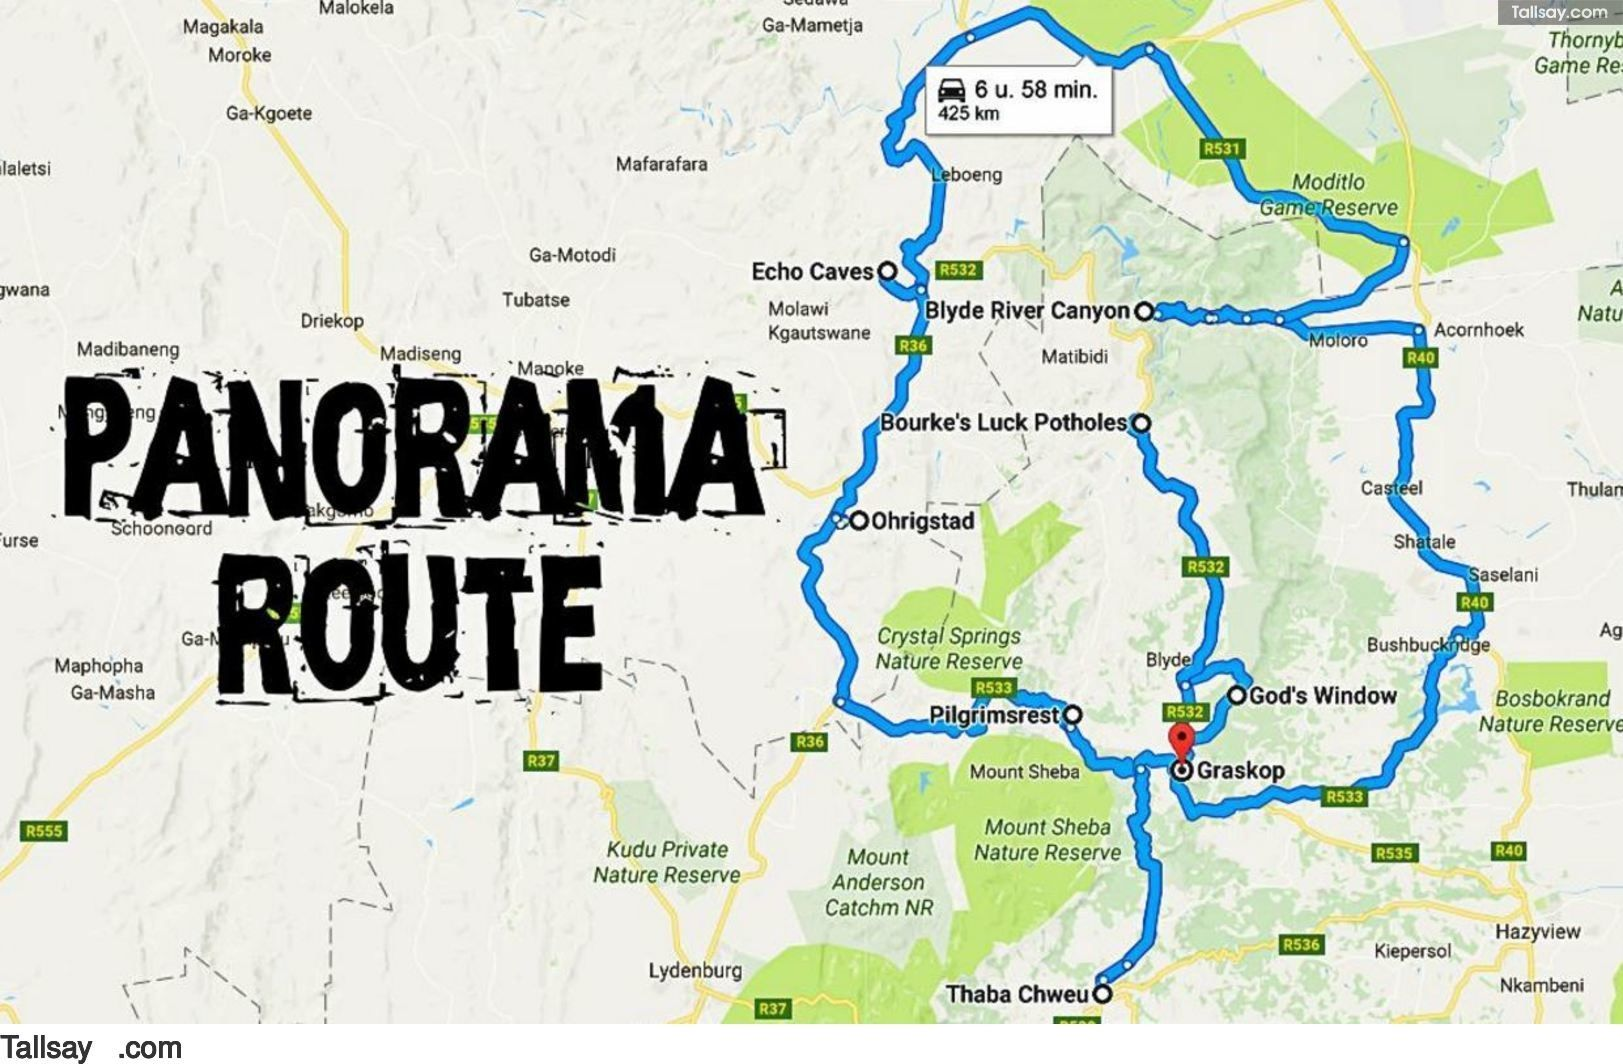 Panorama Route South Africa Map.Panorama Route In Zuid Afrika Tallsay Com Travel South Africa